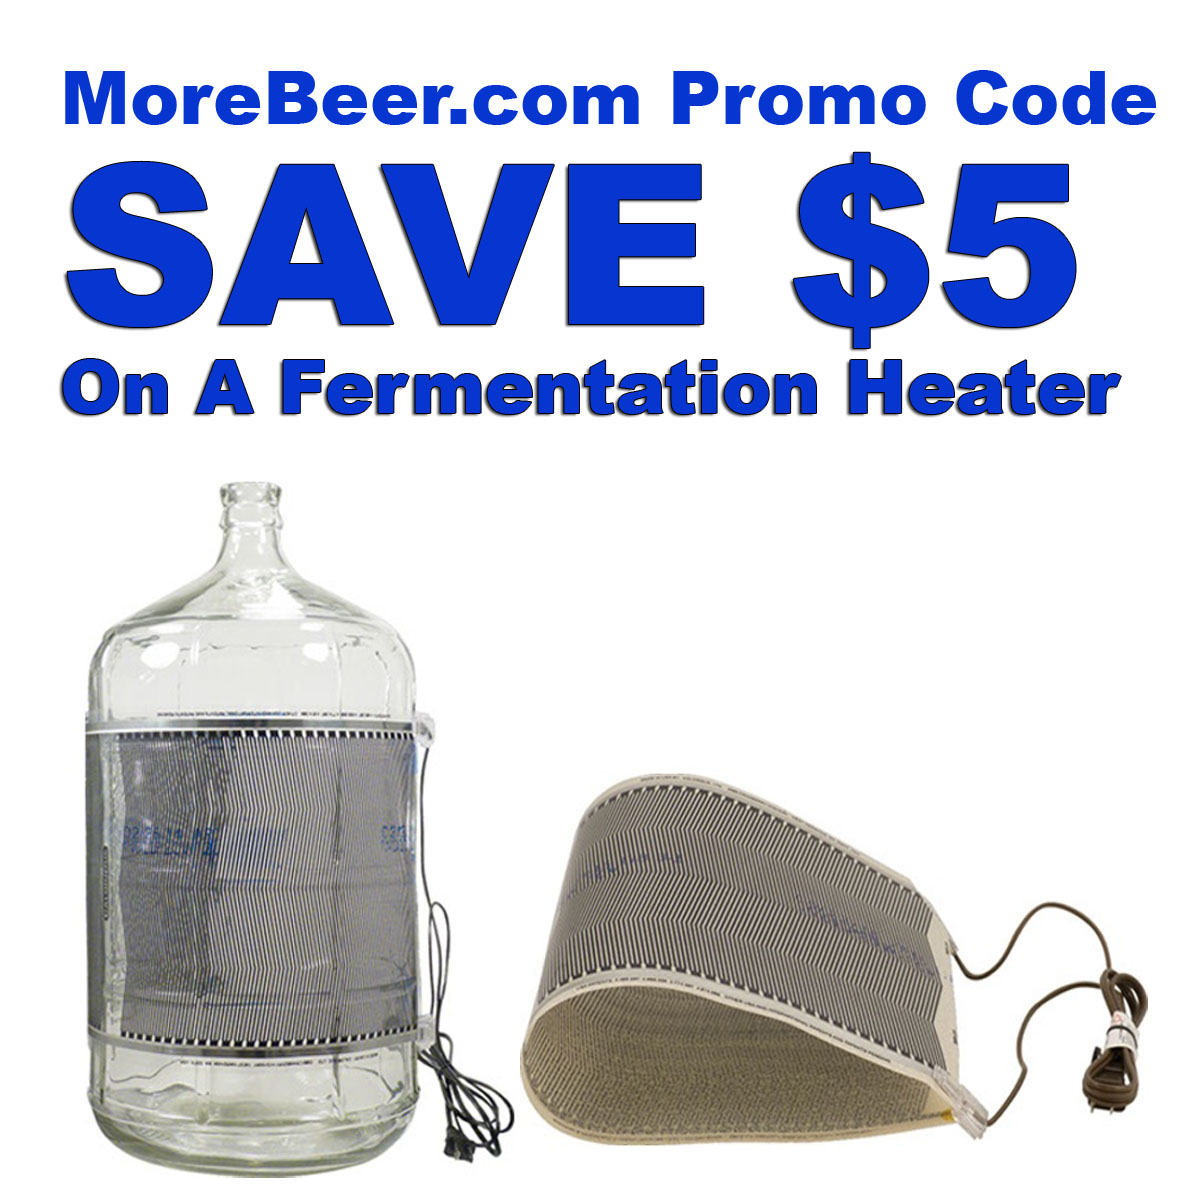 Home Wine Making Coupon Codes for Save $5 On A Fermentation Heater Coupon Code